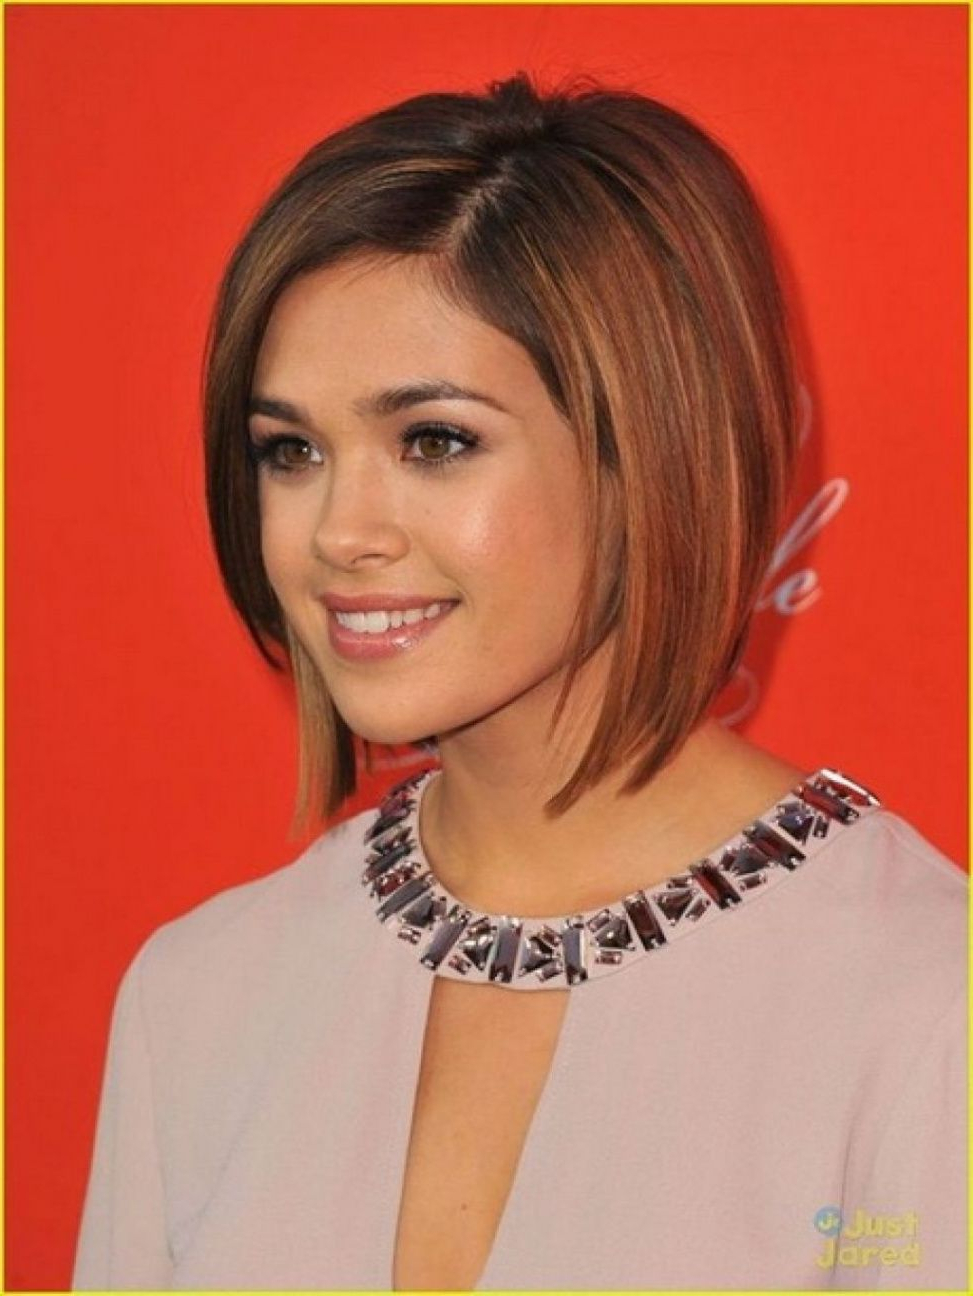 Teenage Girl With Short Hair Curly Guys | Bobs | Pinterest Pertaining To Teenage Girl Short Hairstyles (View 3 of 25)